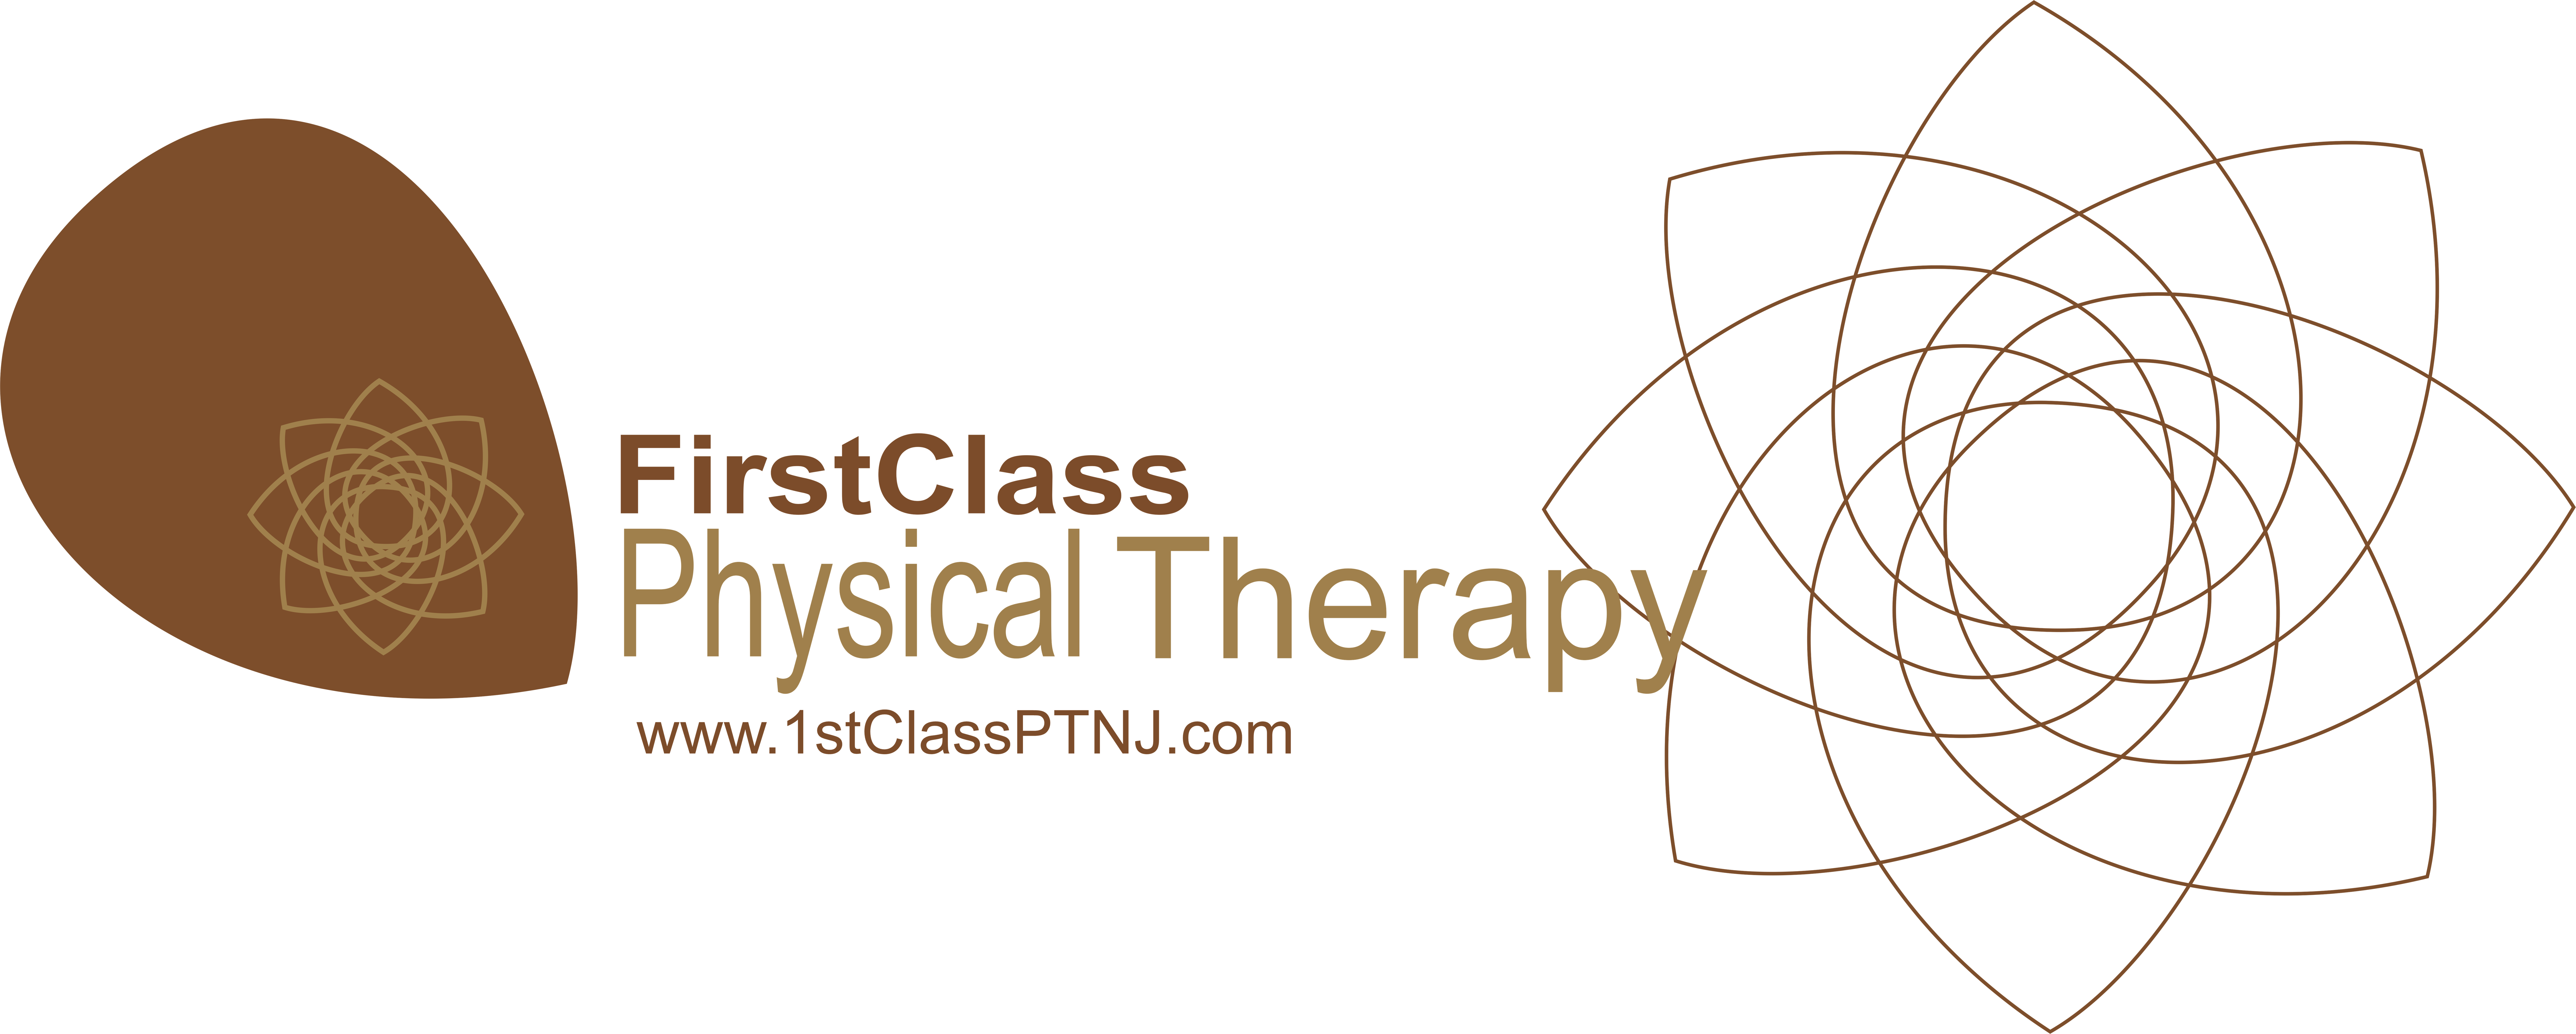 First Class Physical Therapy